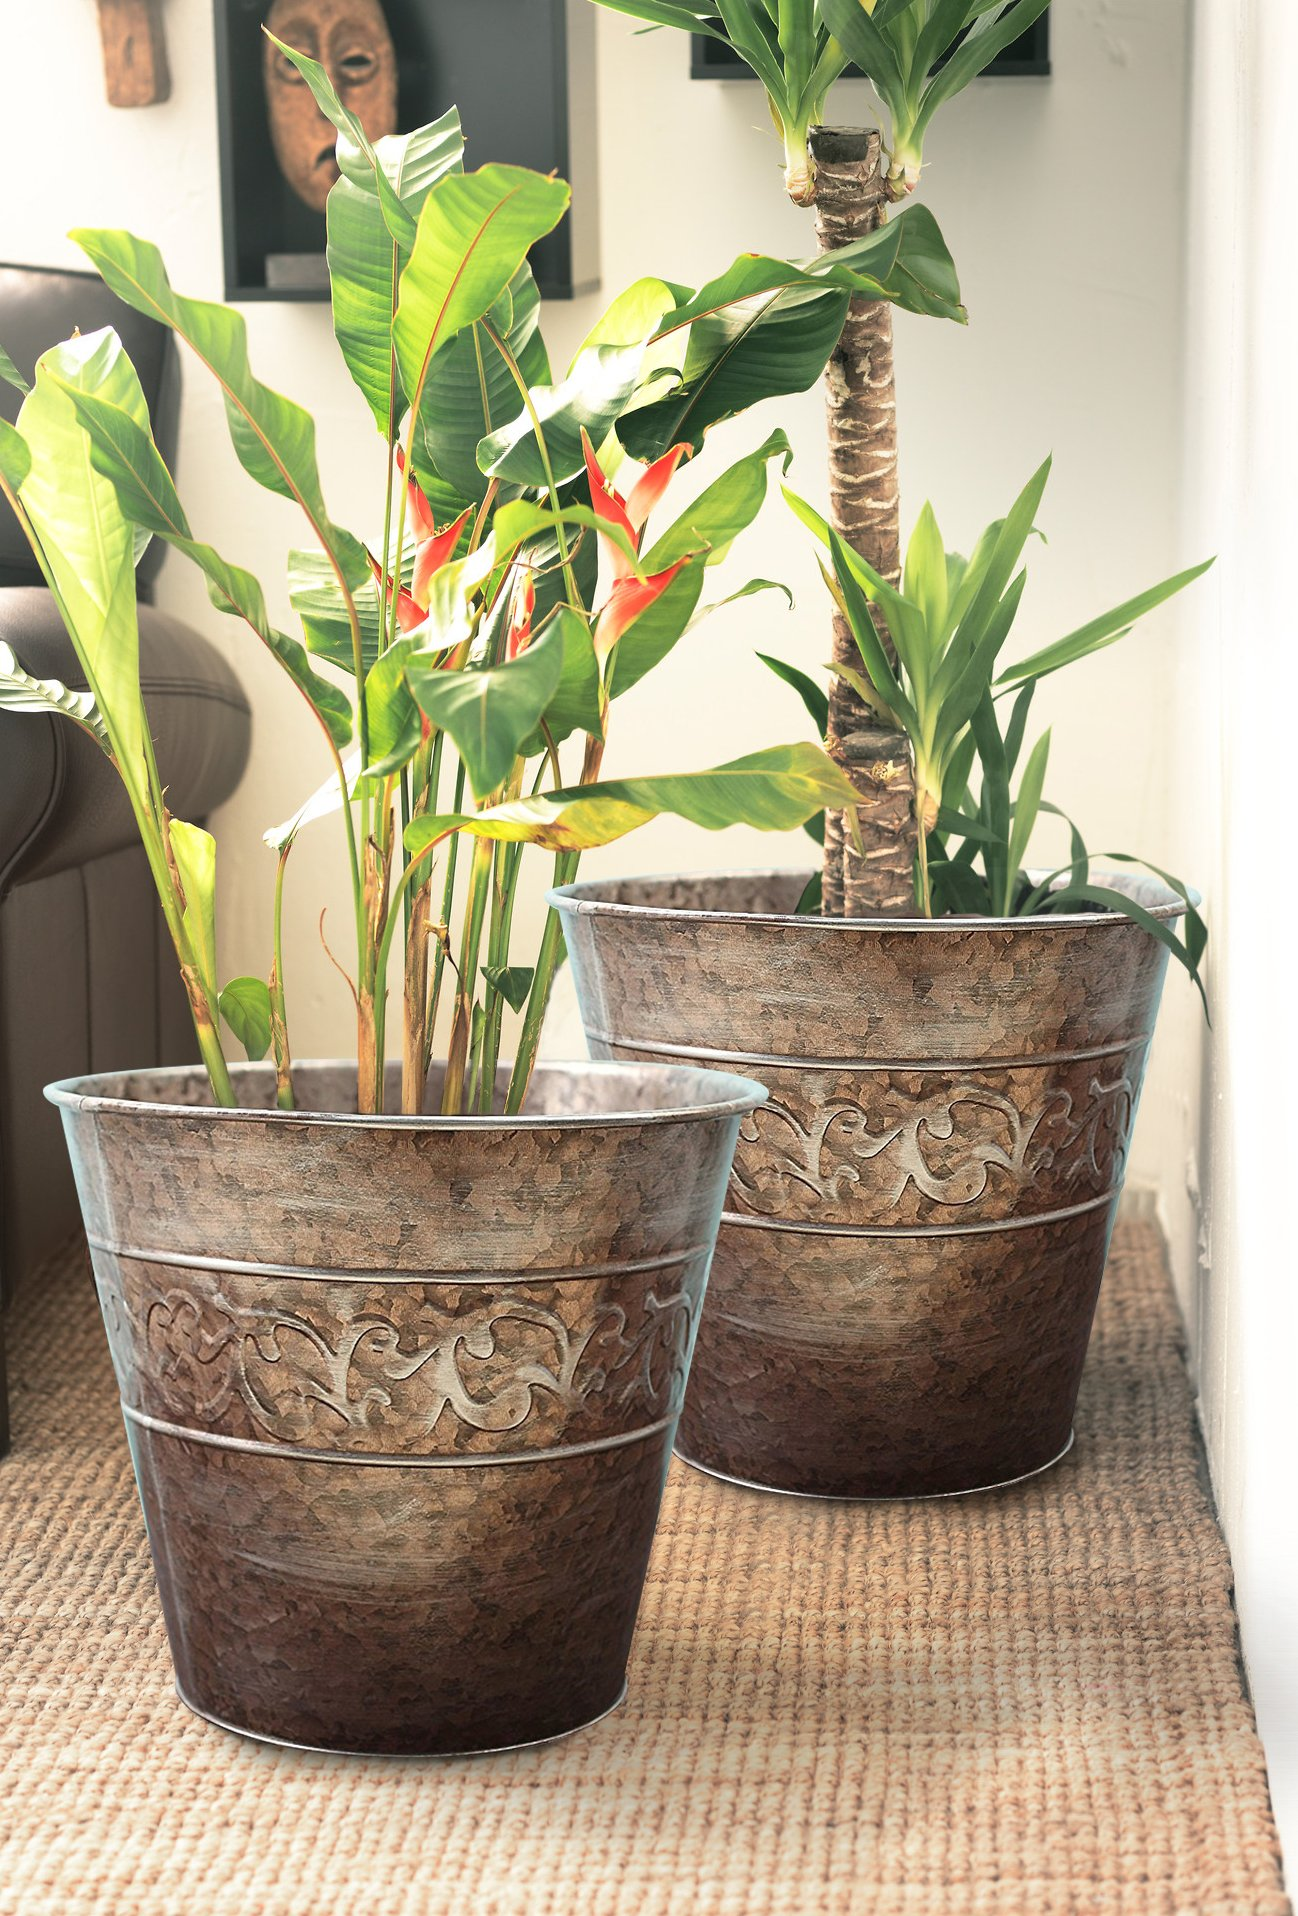 Flower pots Planters 13 inch Set 2, Outdoor and Indoor, Galvanized Gardening Pots for Plants by LA JOLIE MUSE